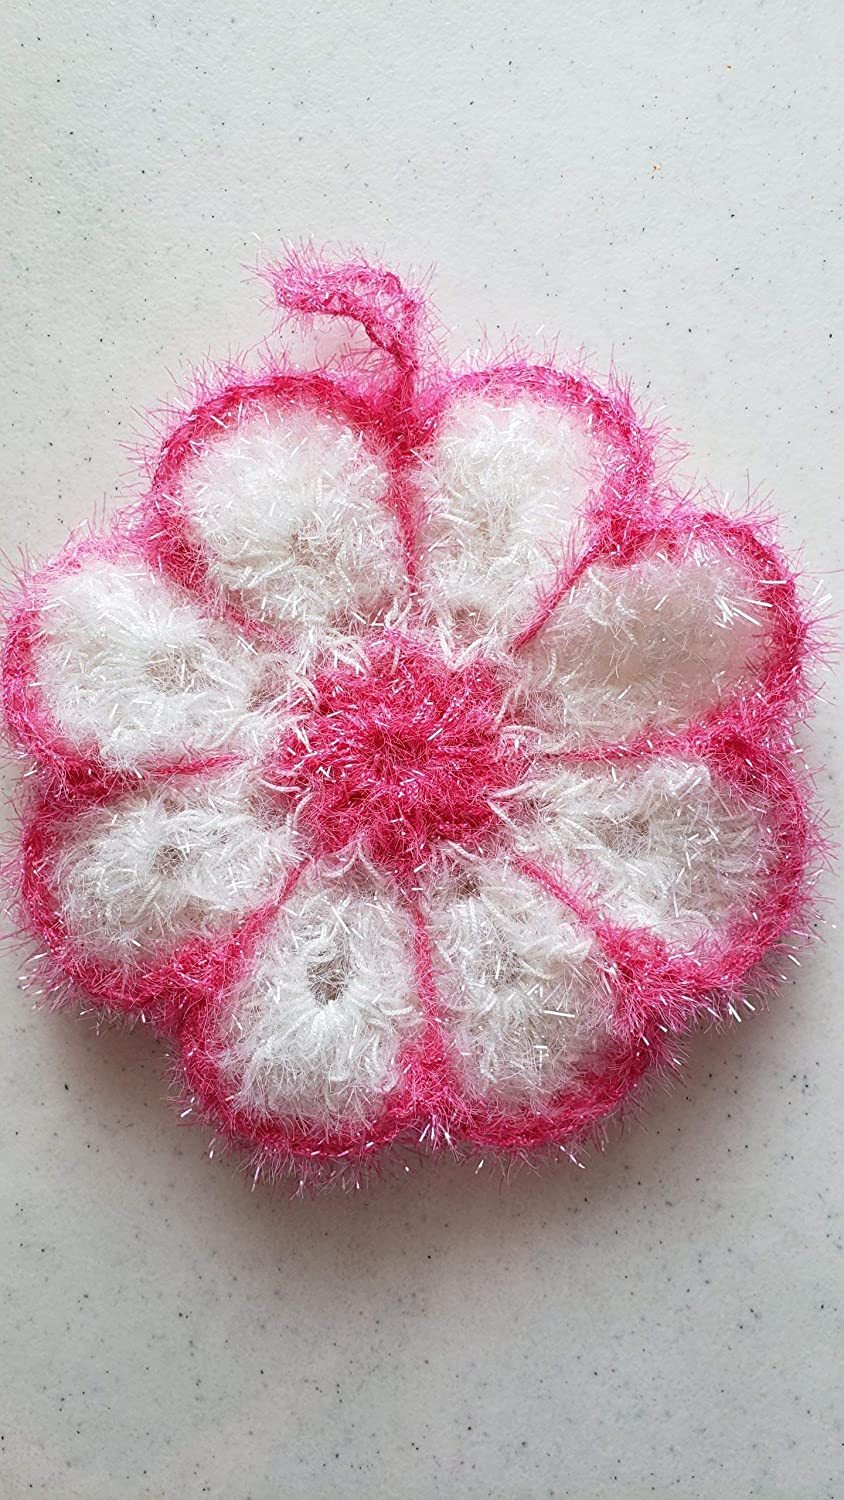 Handmade crochet dishcloth dish scrubby or scrubber Sales High quality results No. 1